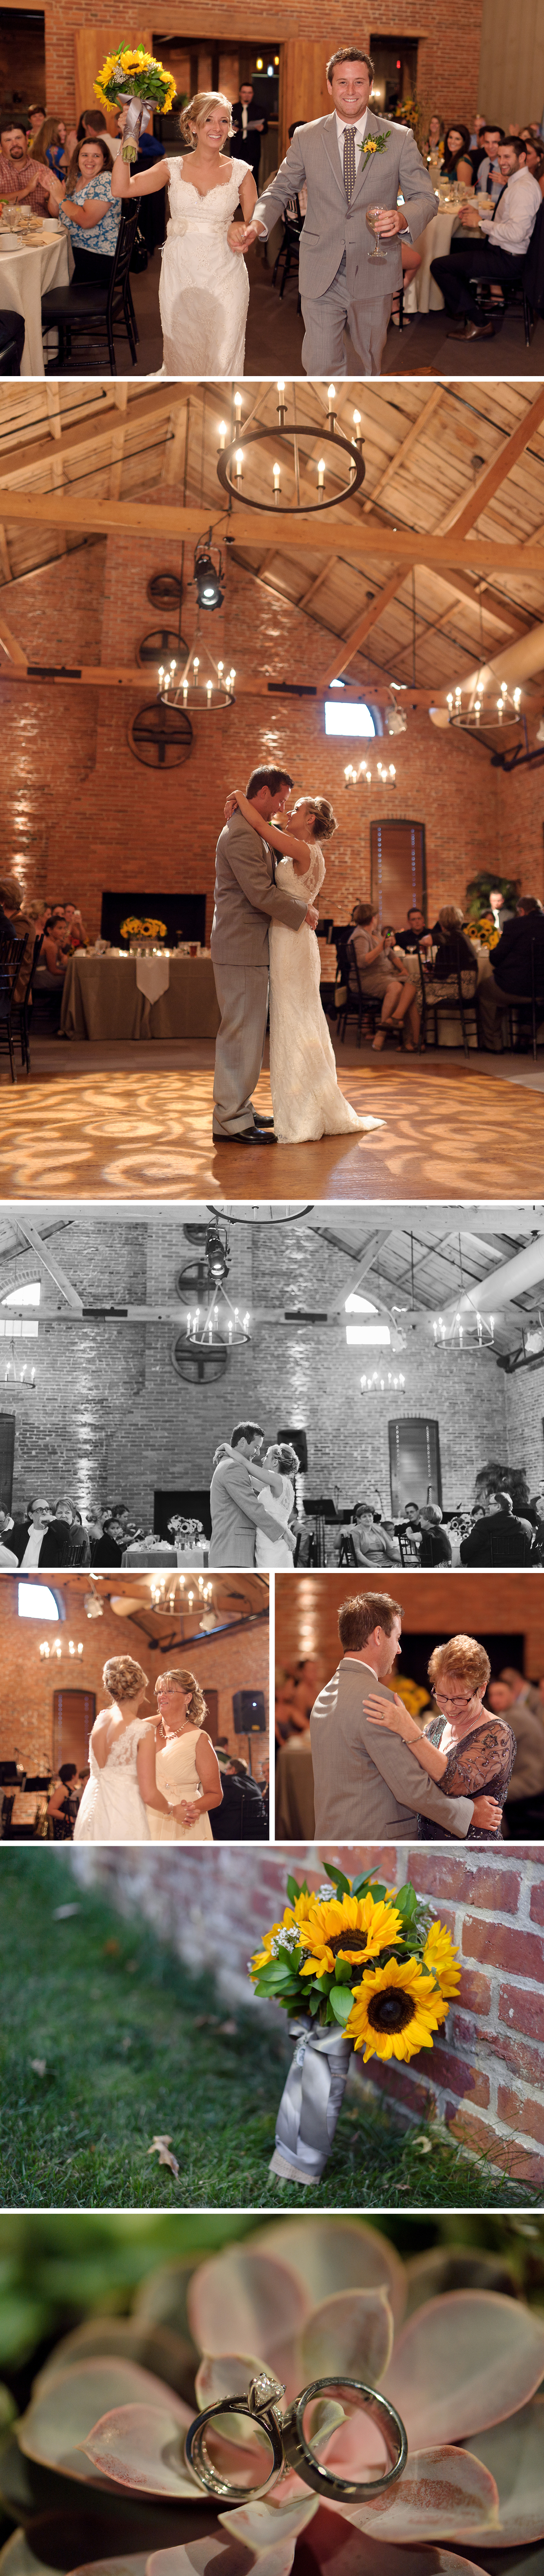 Cork Factory wedding photography by Jeremy Bischoff Photography